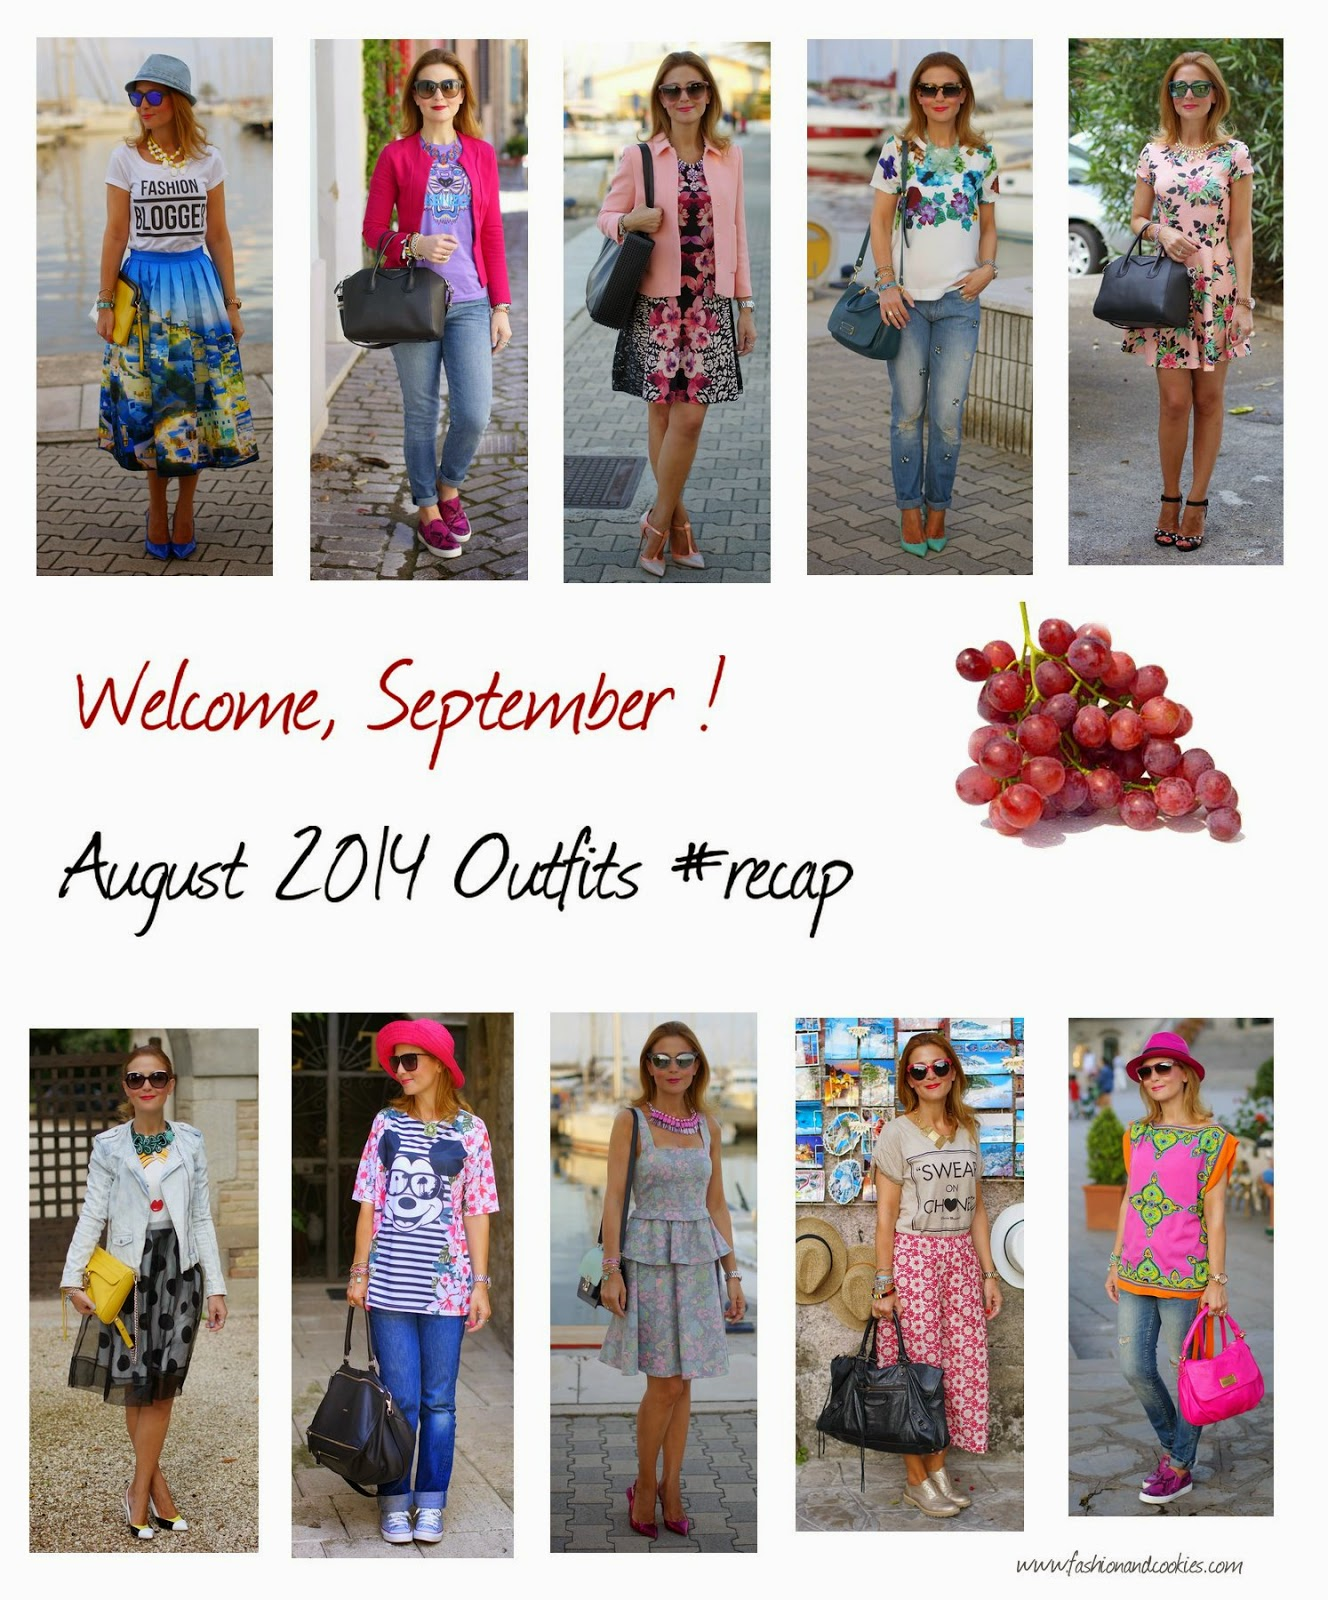 Welcome September, August 2'14 outfits recap, Fashion and Cookies, fashion blogger